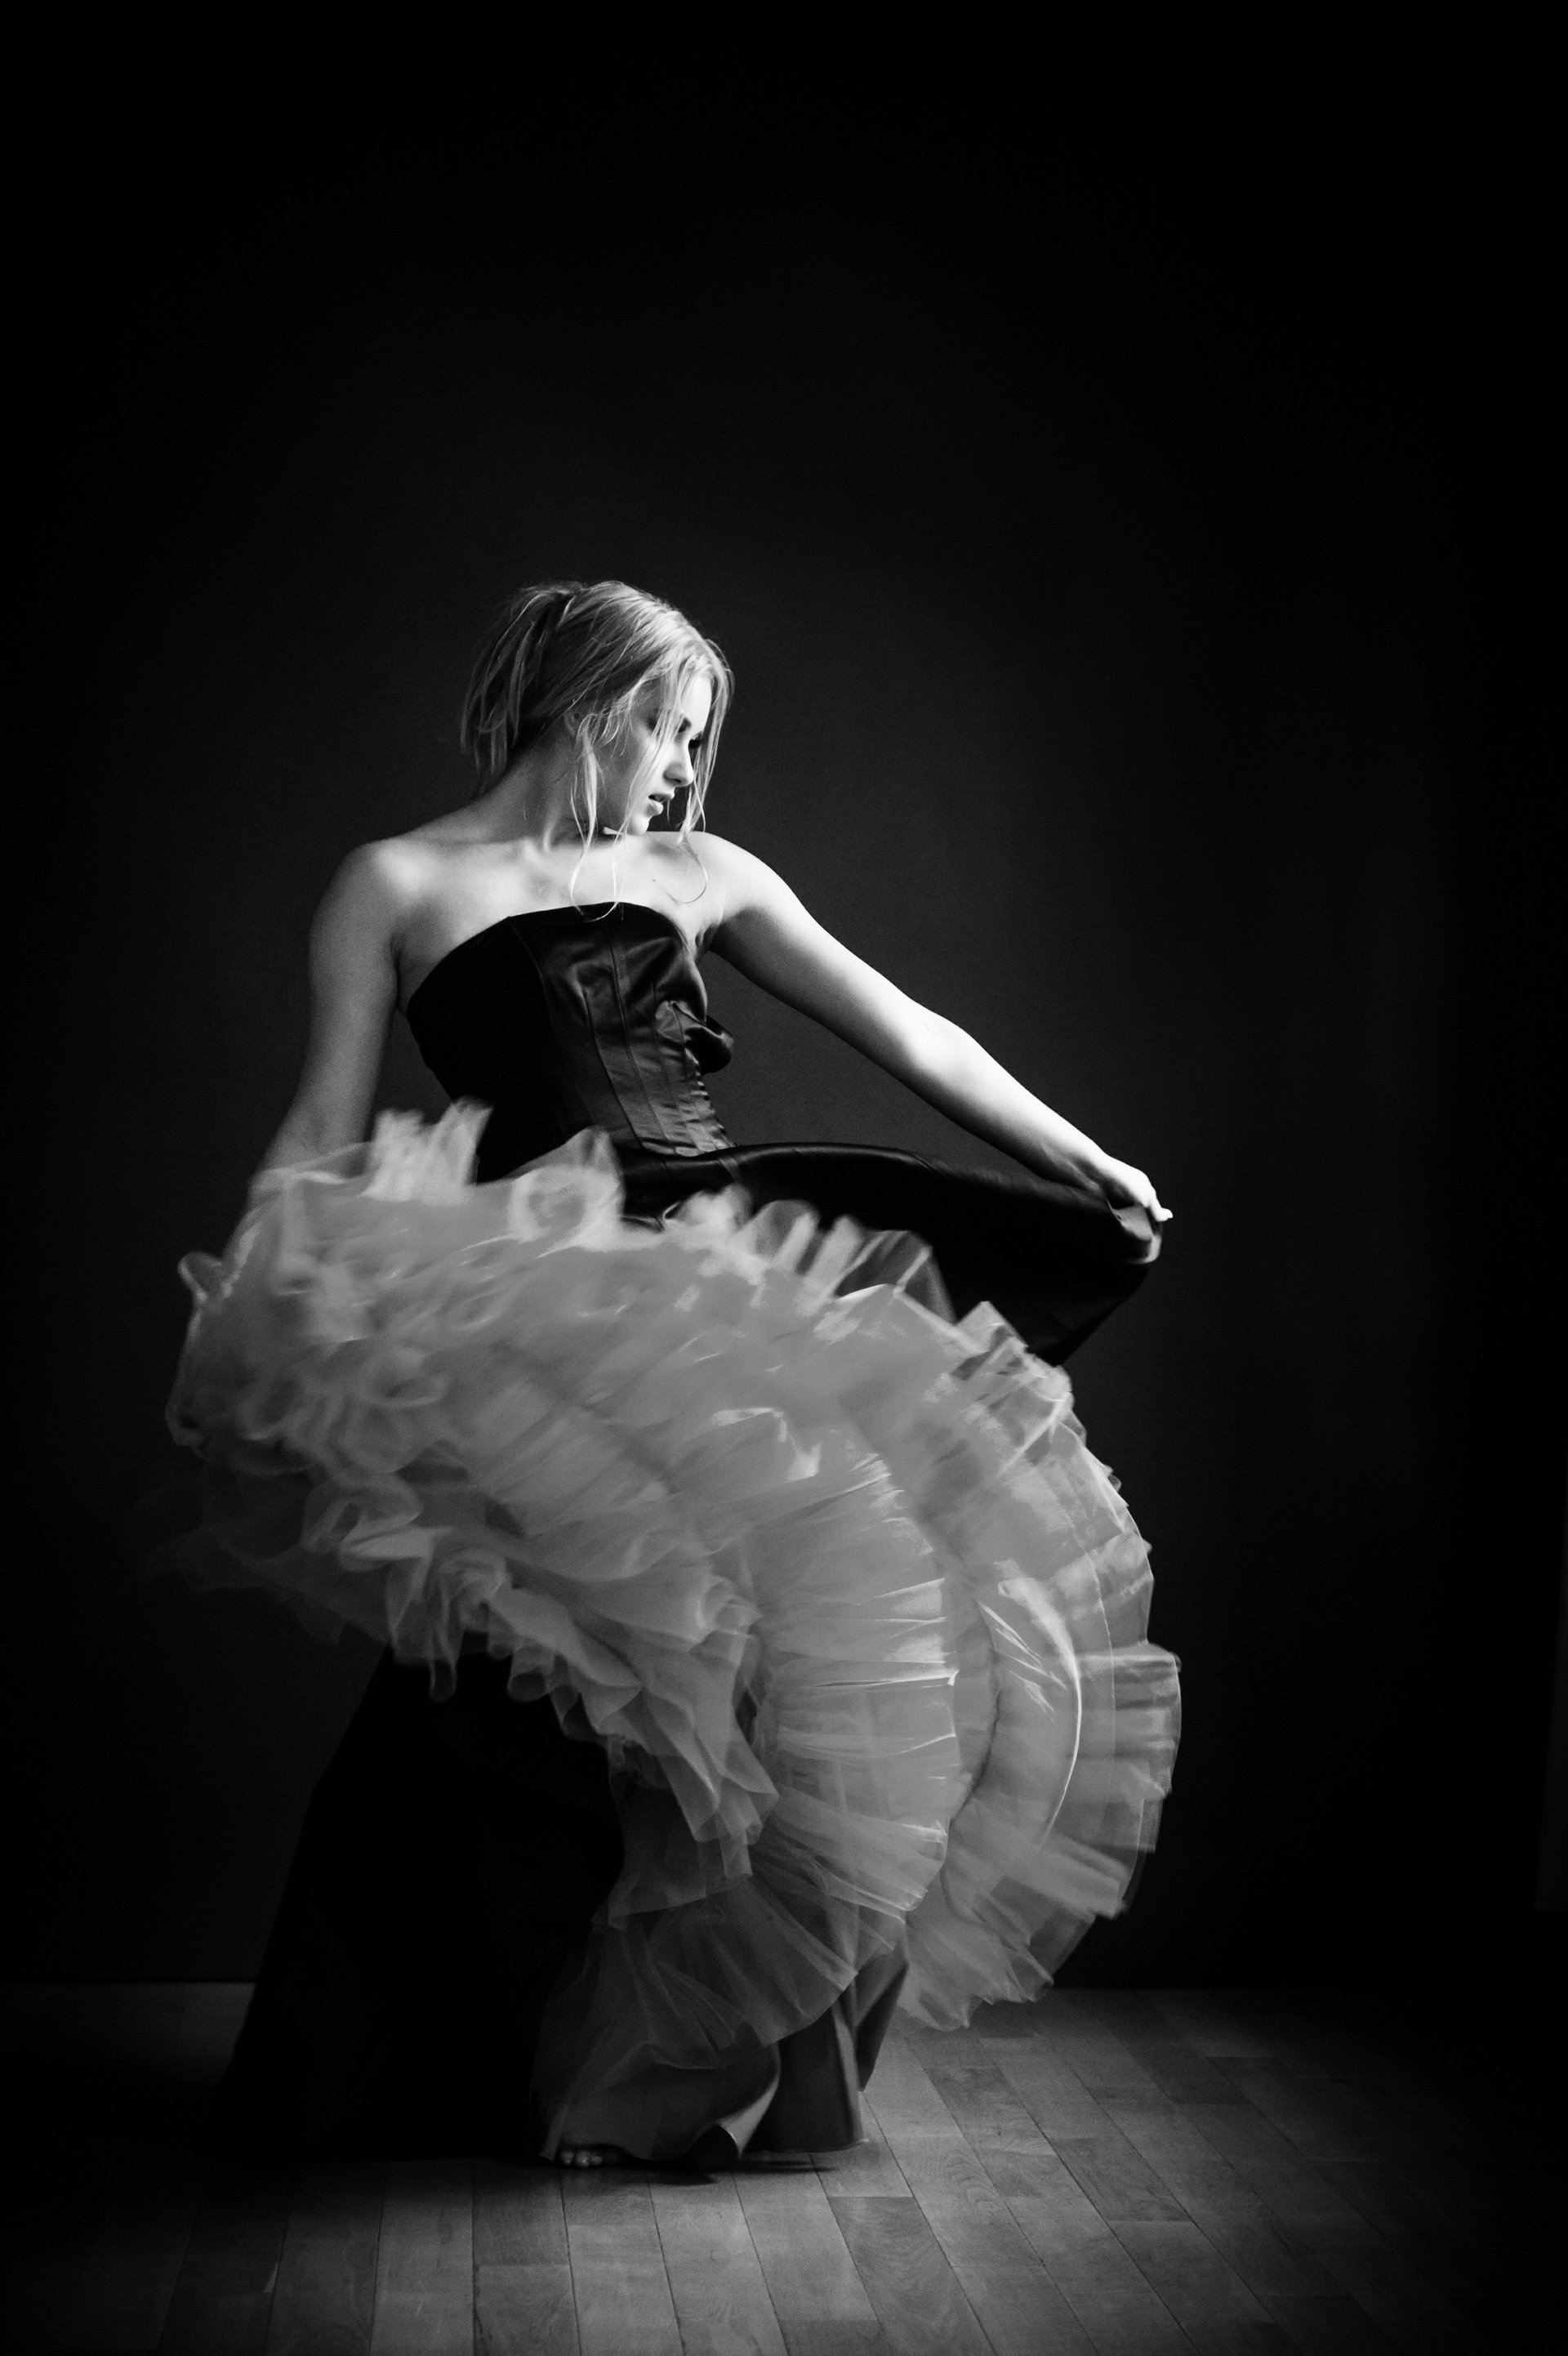 nEO_IMG_Xing Photography Soul of Dance - Haley-126-BW.jpg